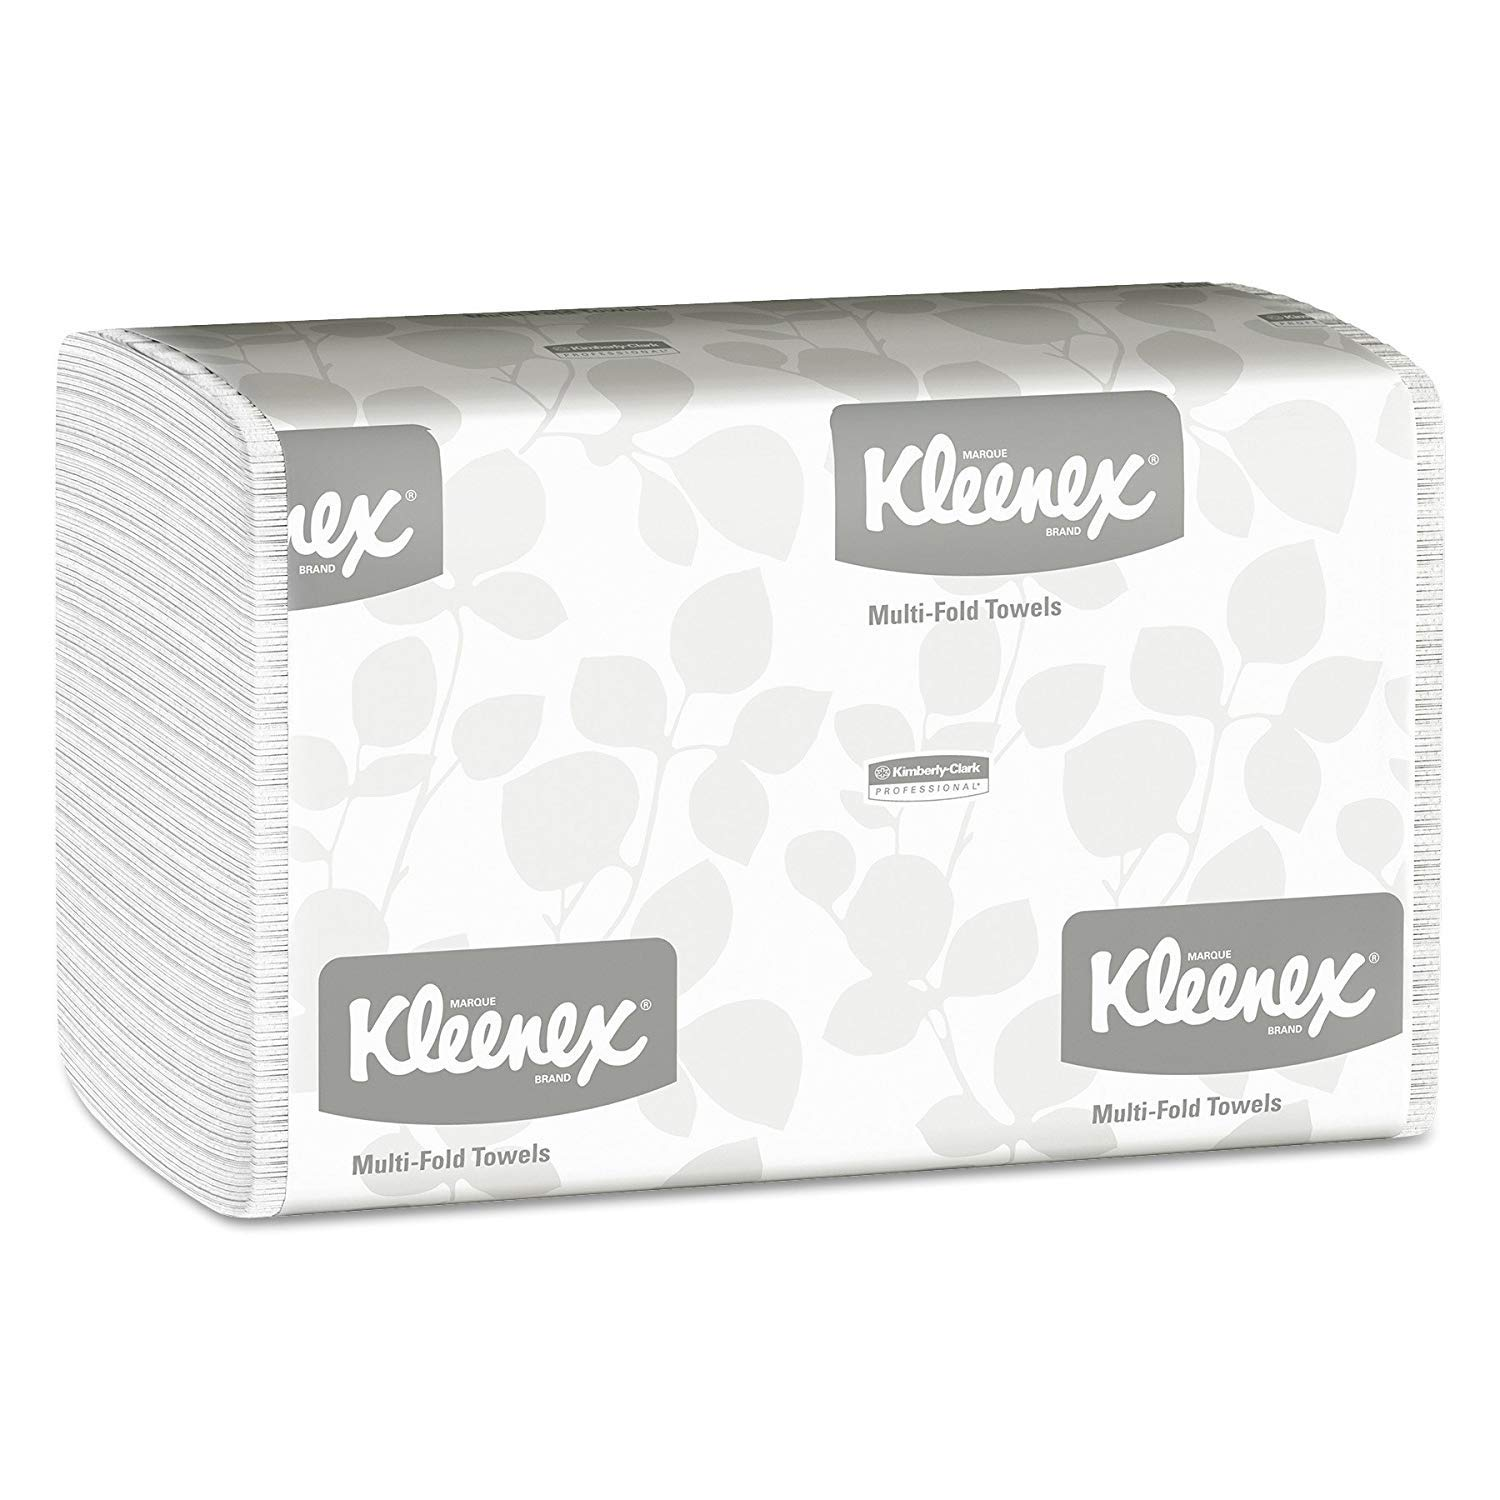 Kimberly-Clark Professional Kleenex Multifold Paper Towels (01890), White, 16 Packs/Case, 150 Tri Fold Paper Towels/Pack, 2,400 Towels/Case (2 Cases of 16 Packs) by Kimberly-Clark Professional